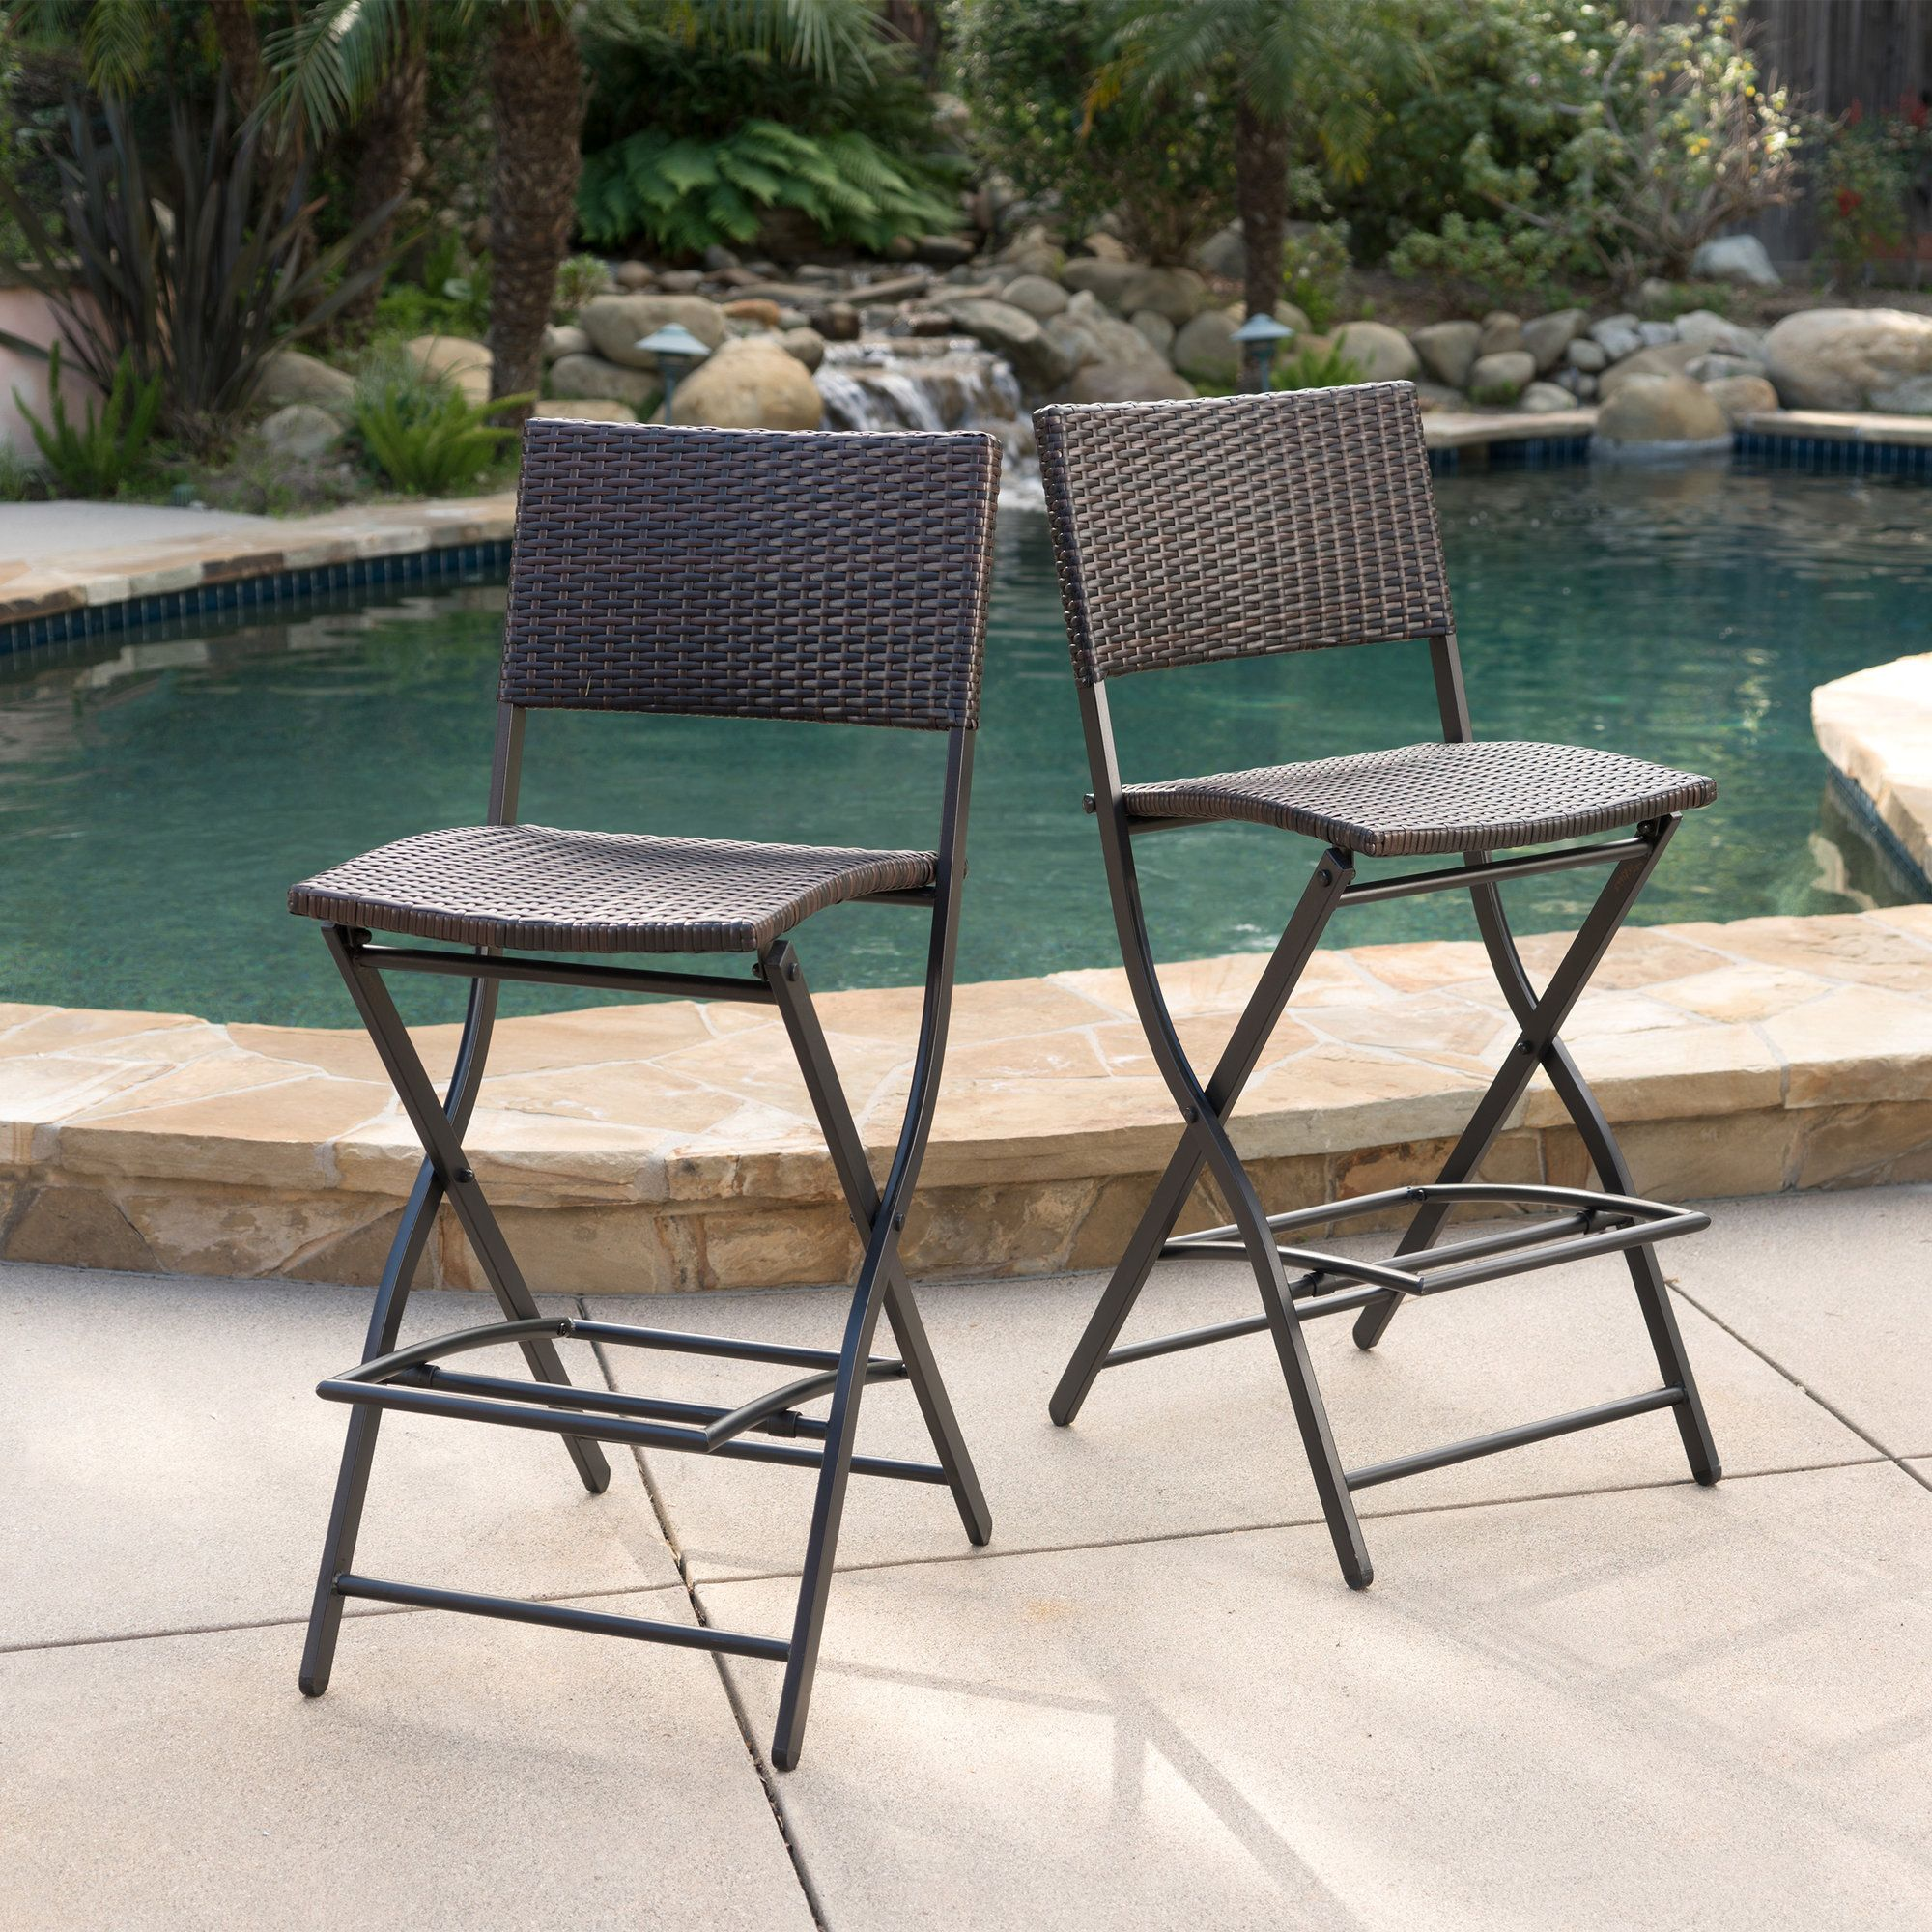 Marvelous Stools Bar Chairs F2C Pack Of 2 Brown Wicker Barstool All Home Interior And Landscaping Ologienasavecom